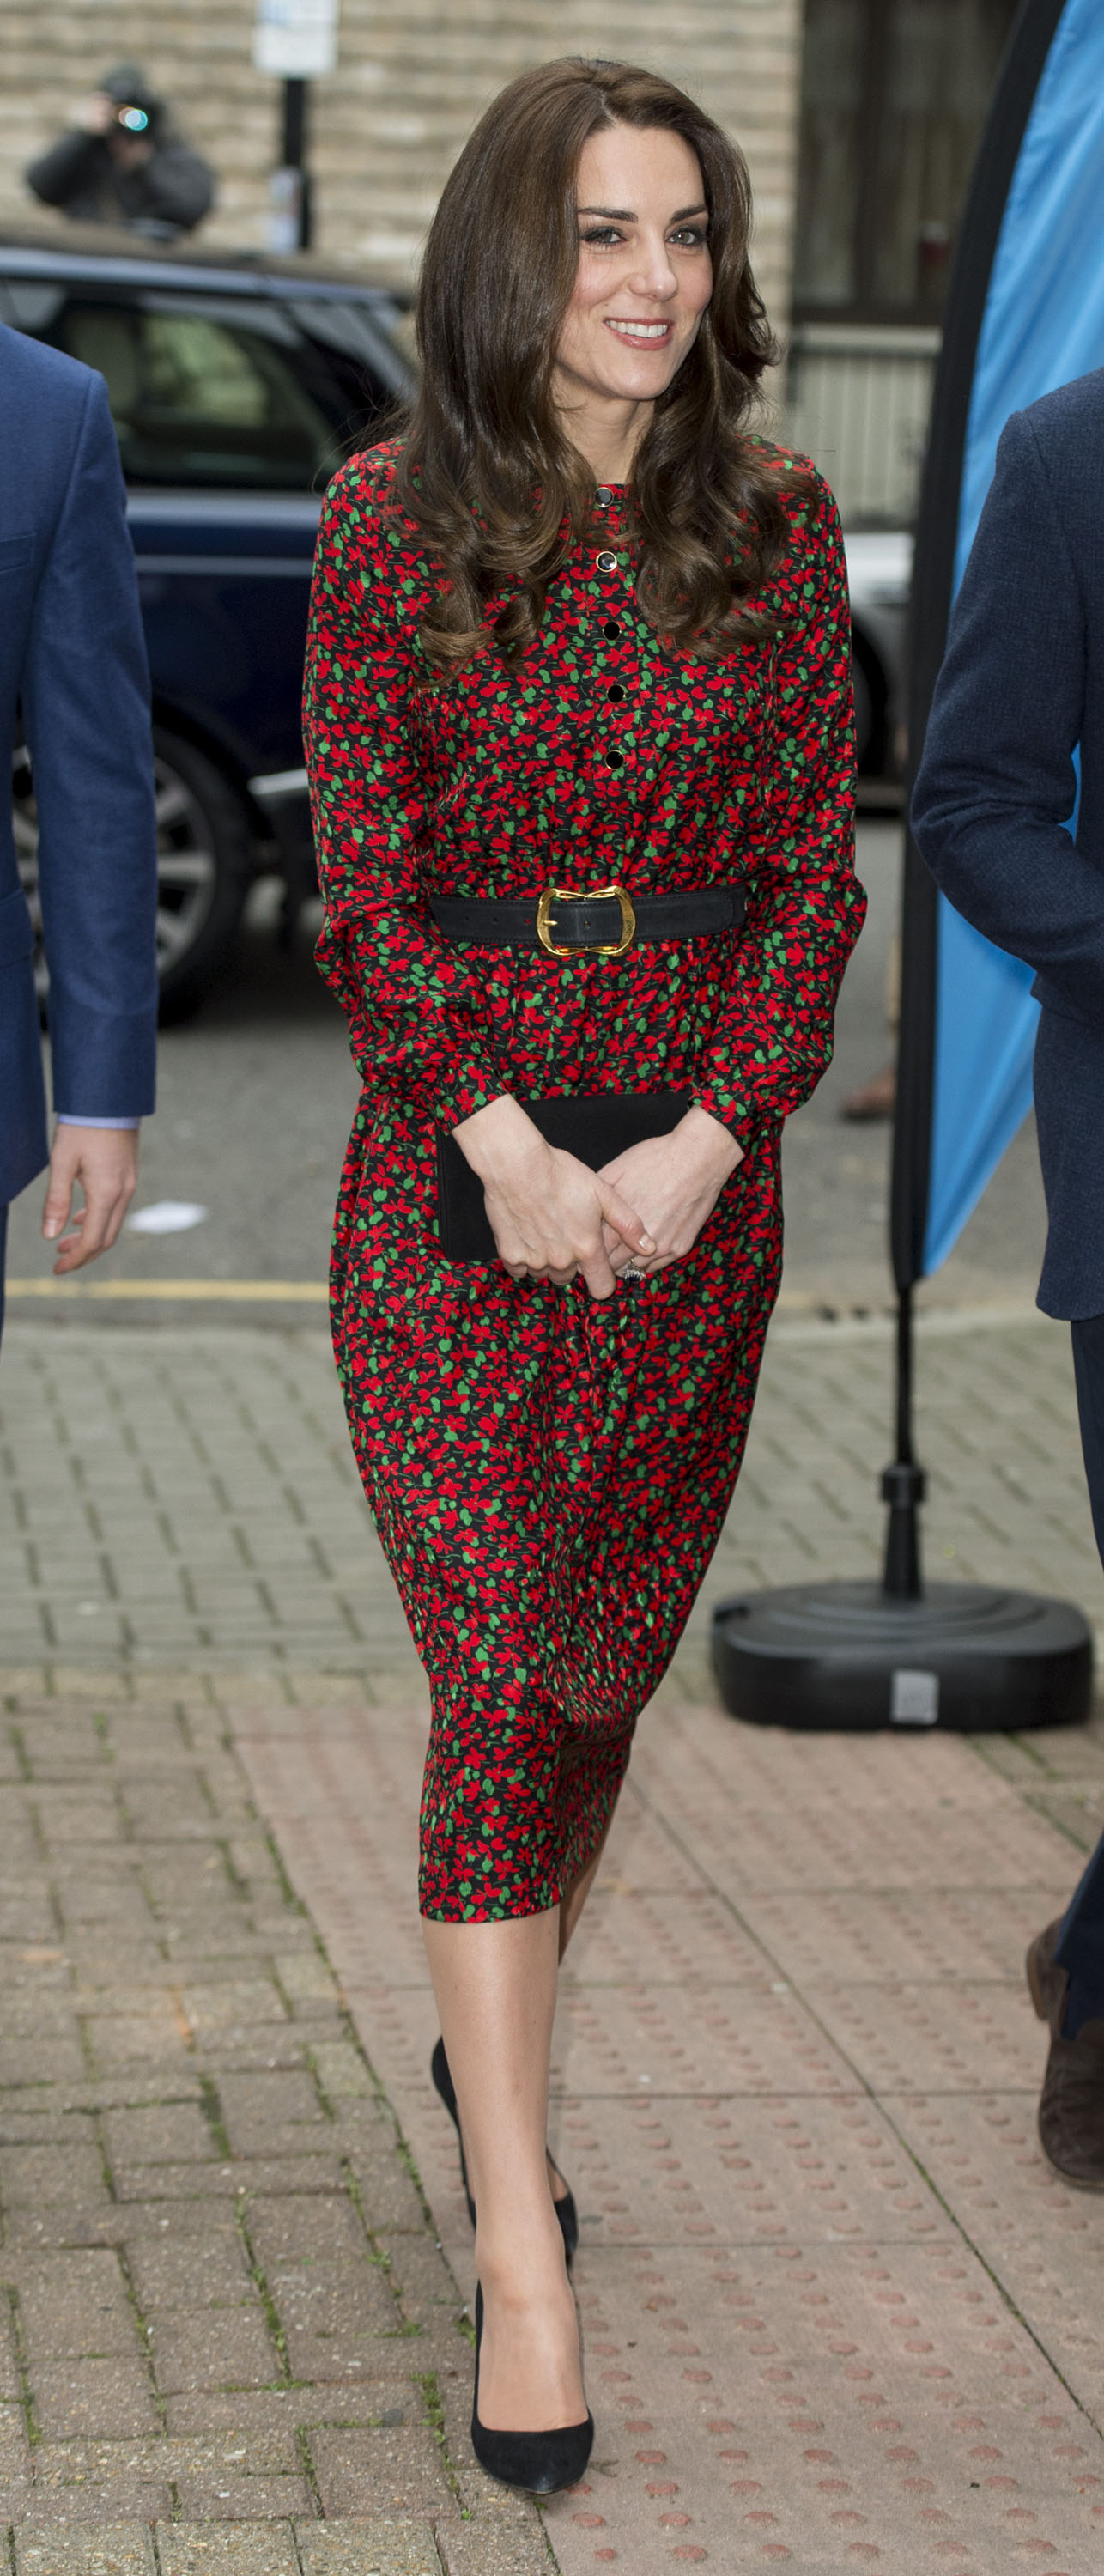 Catherine, Duchess of Cambridge attends a Christmas party for volunteers at The Mix youth service in London, on Dec. 19, 2016.